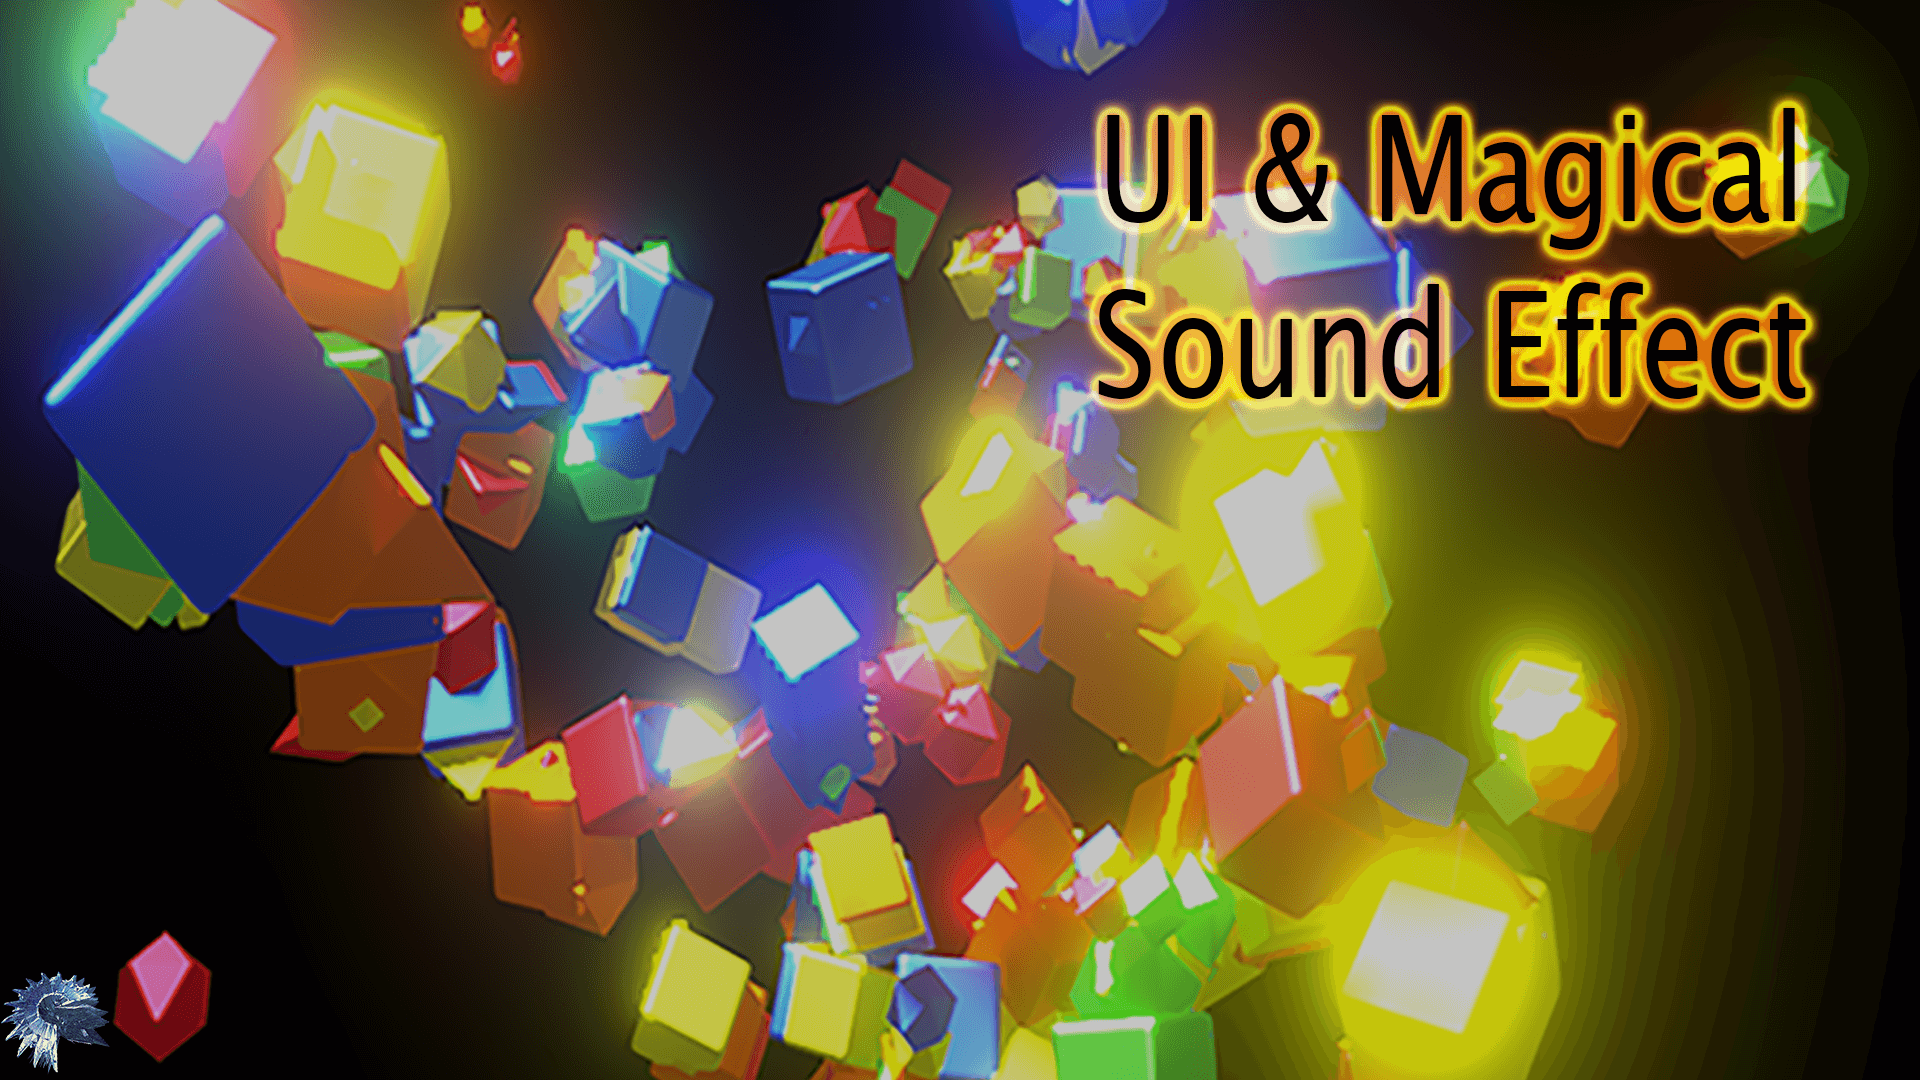 UI and Magical Sound Effects by ViRiX Dreamcore in Sound Effects